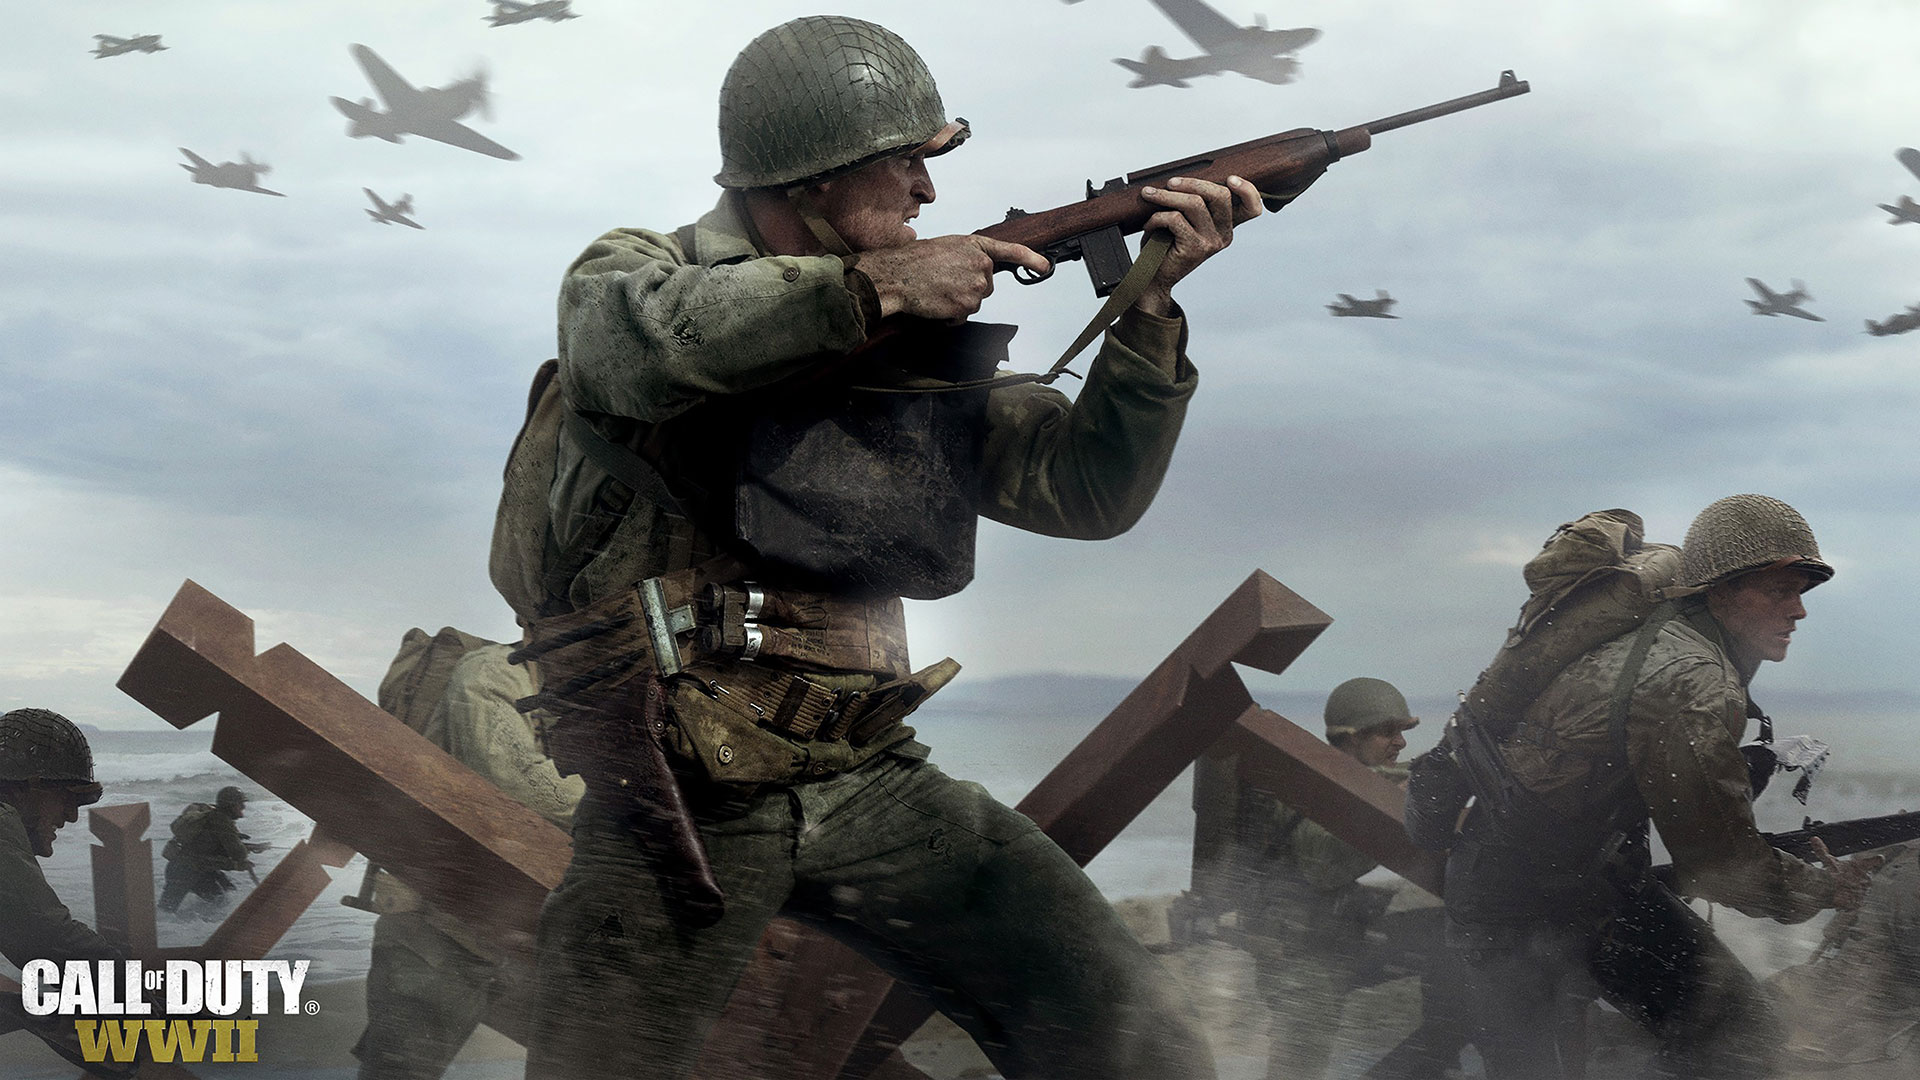 'Call of Duty: WWII' Debuts to Half a Billion Dollar Launch Weekend